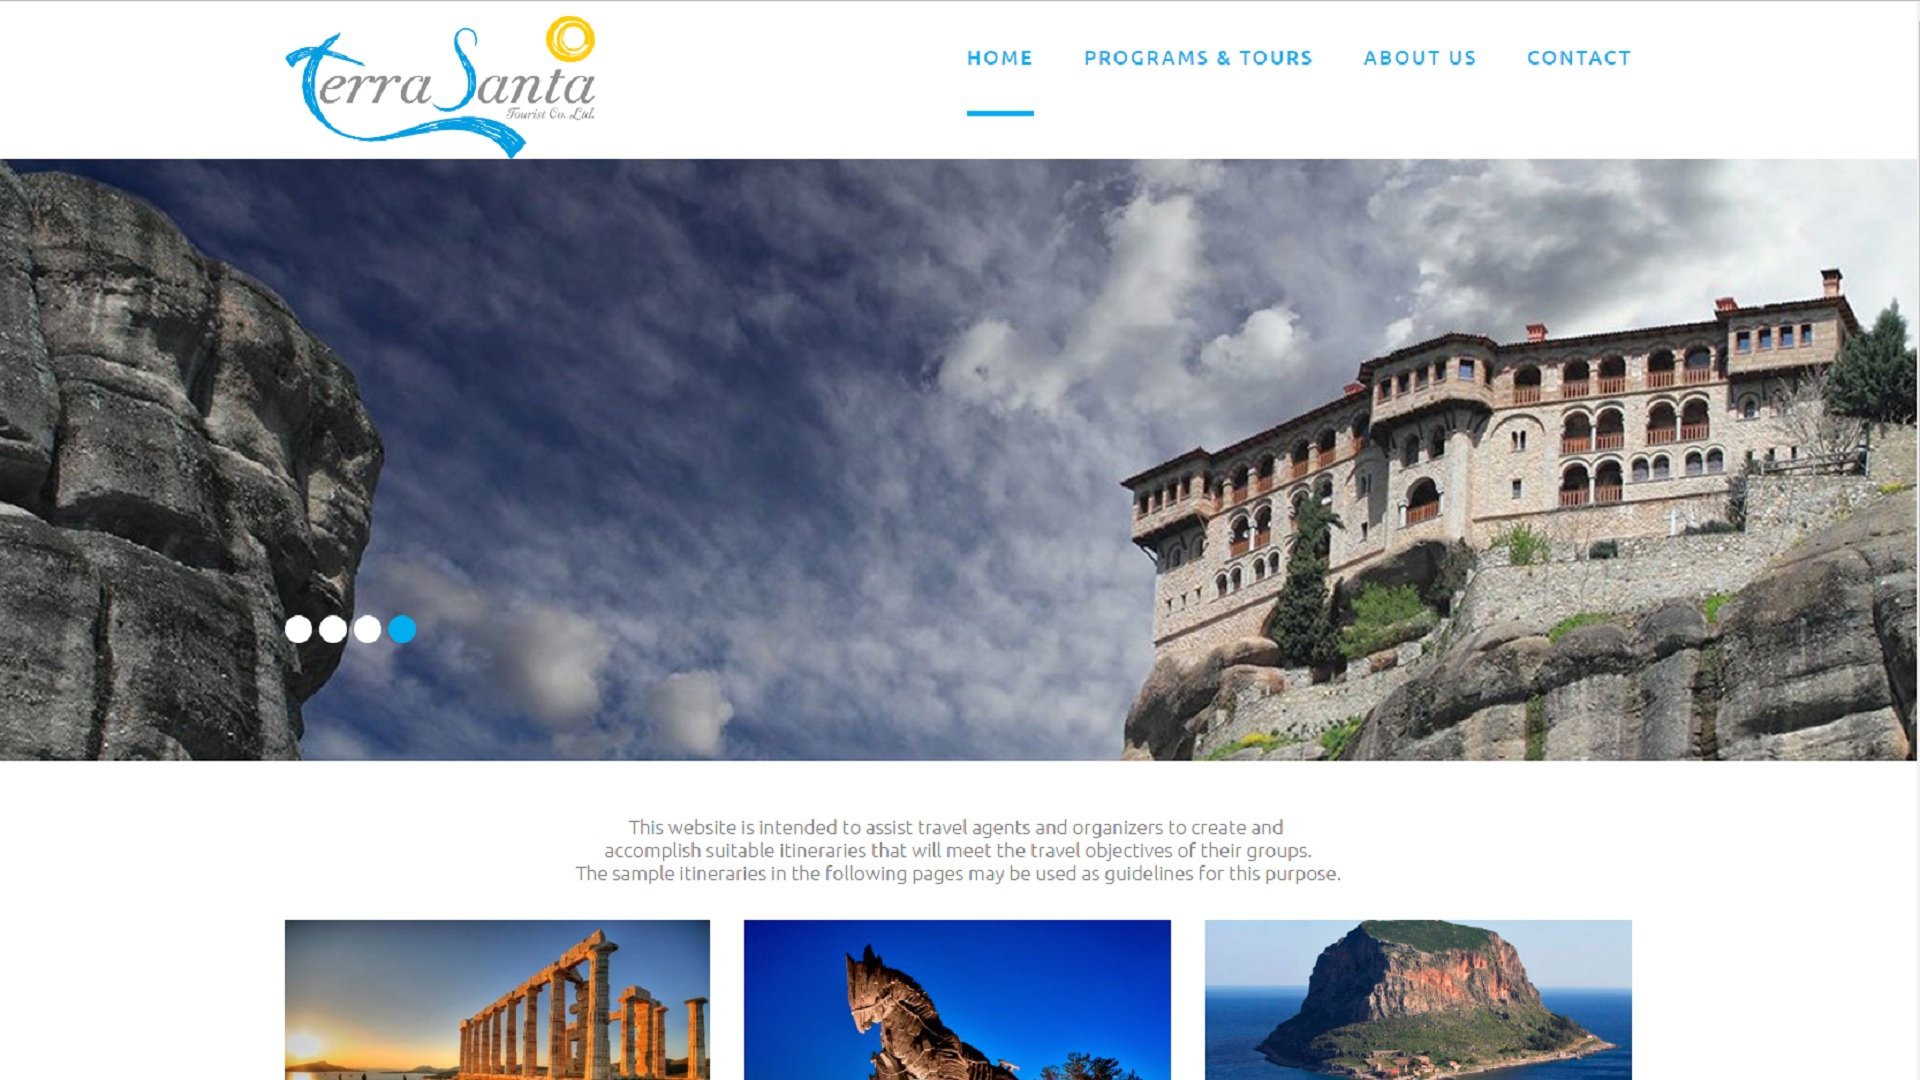 RevMakers Websites - Terra Santa Travel Agency Athens